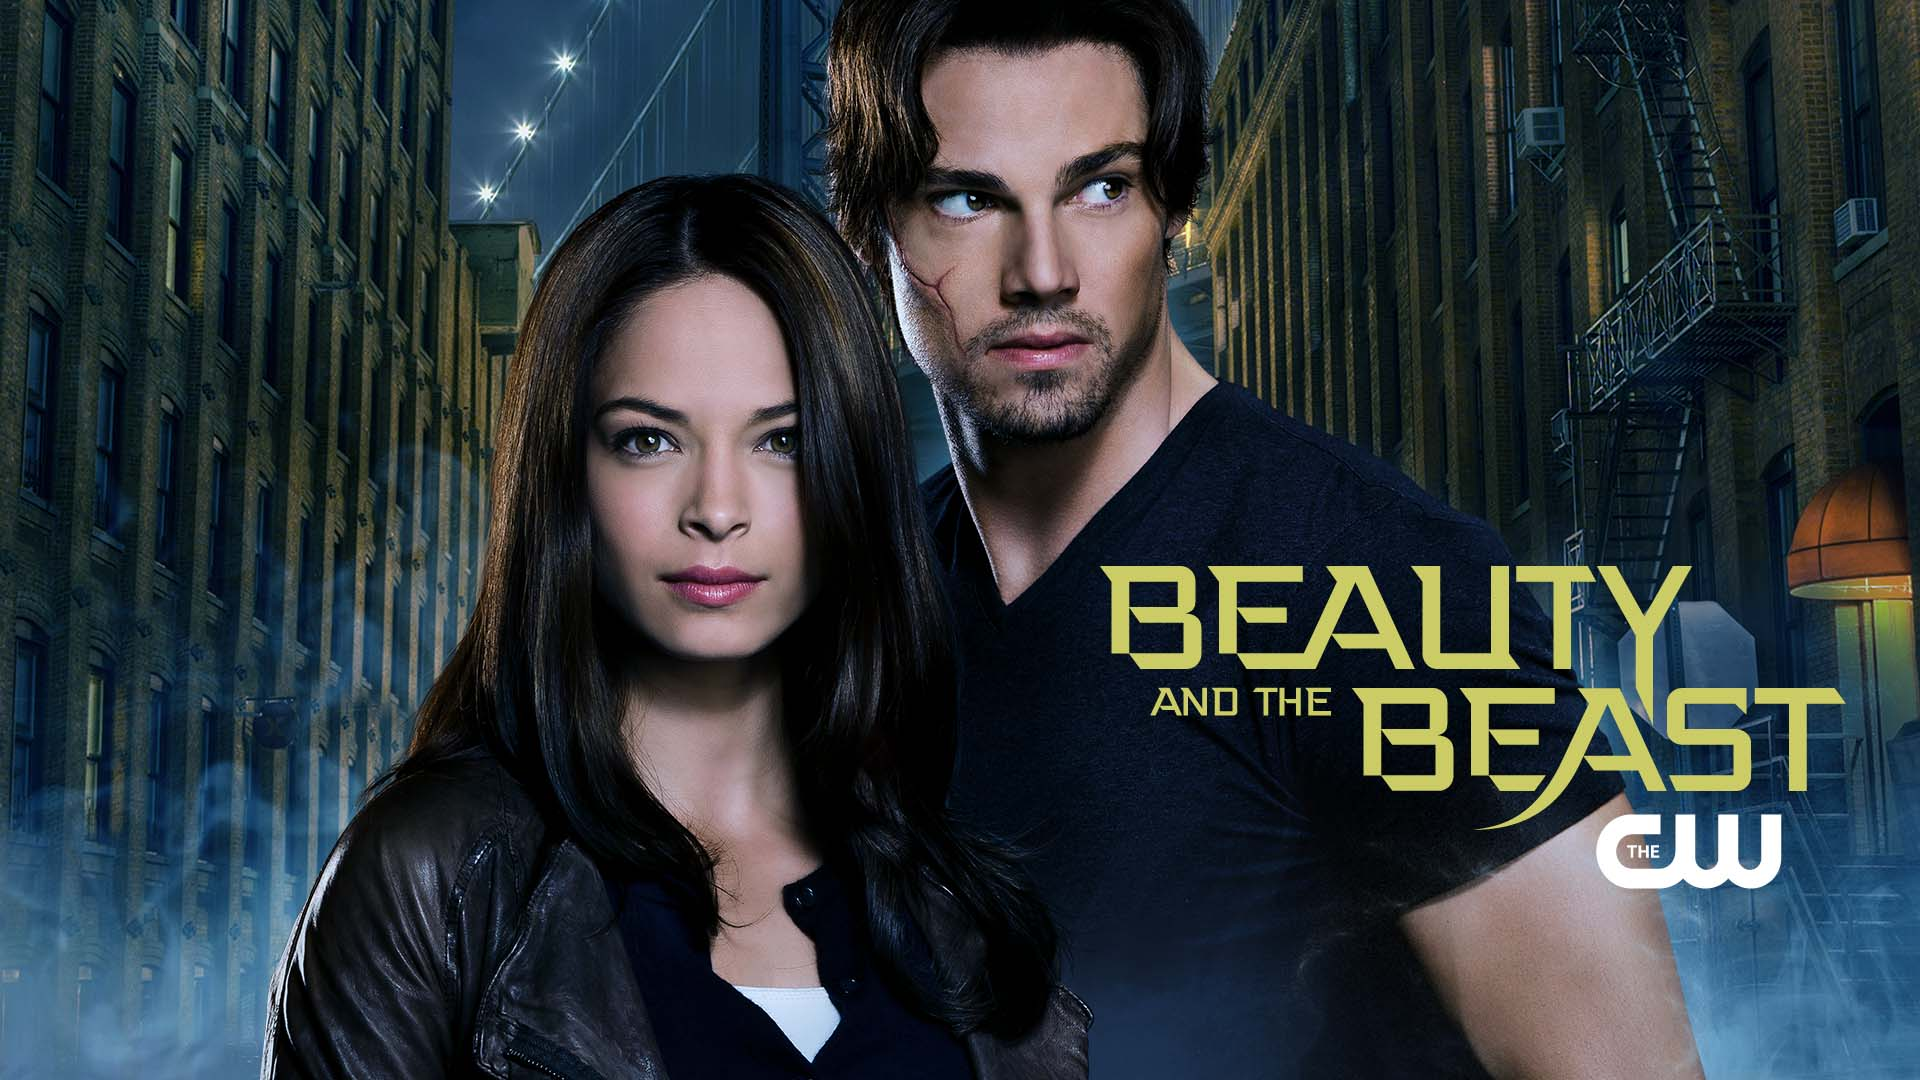 Beauty and the beast cw show wiki navigation